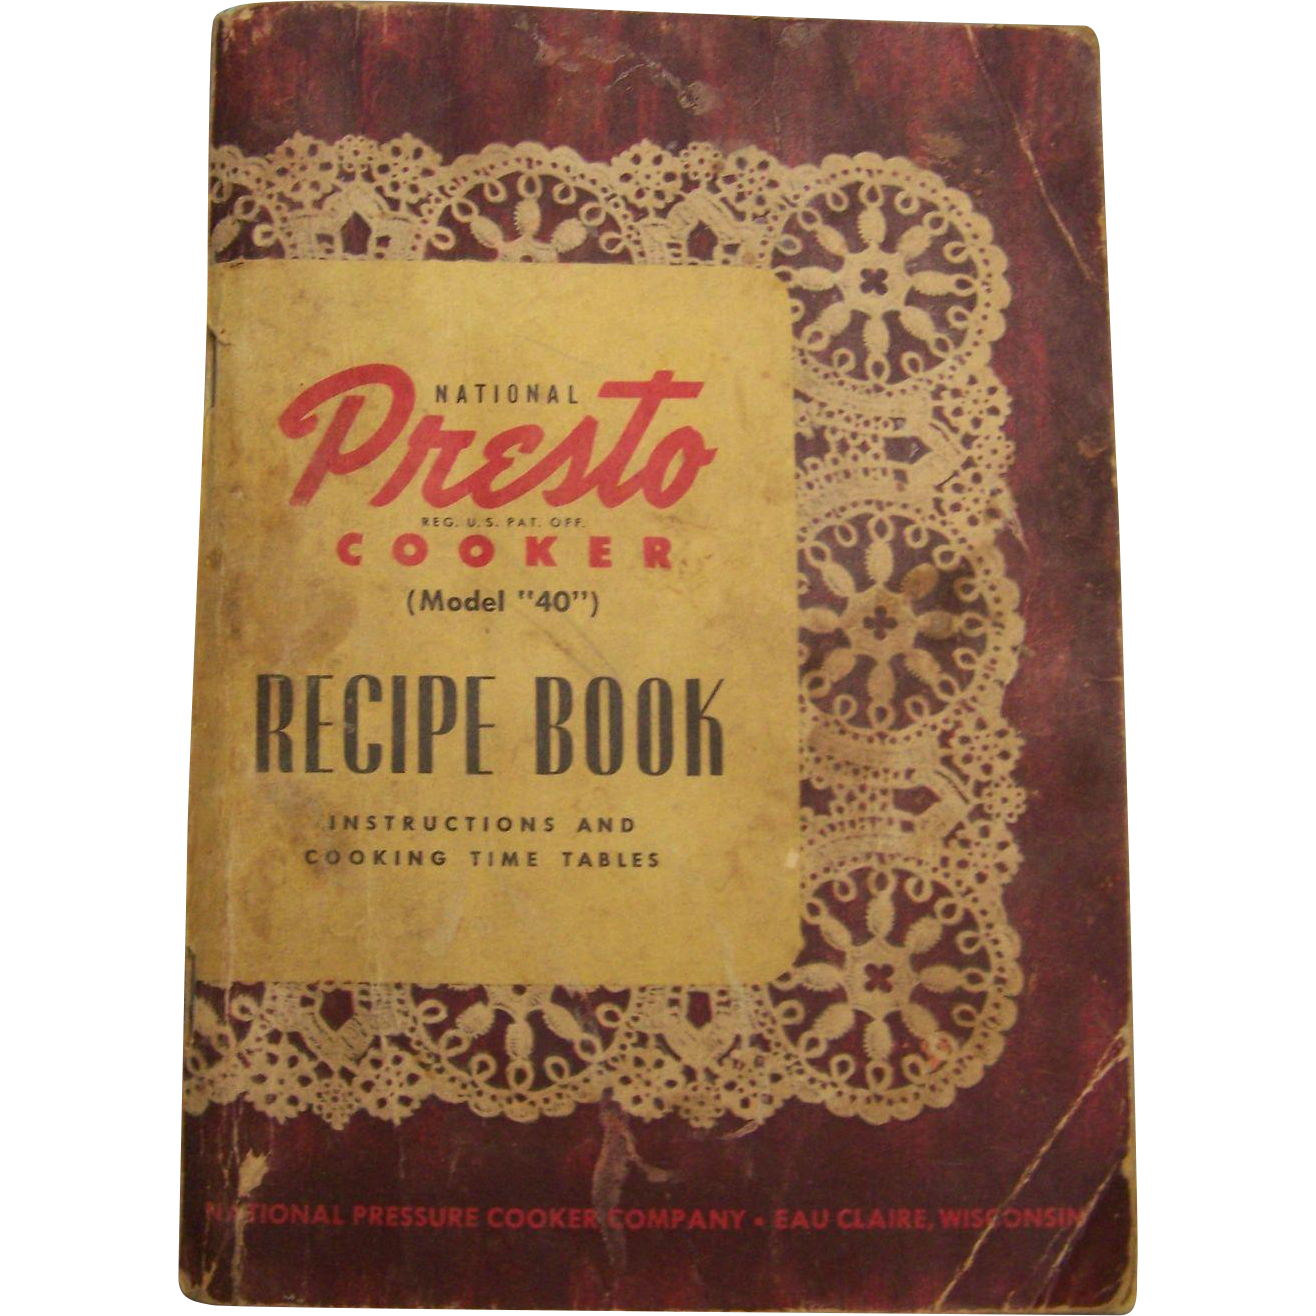 Presto Pressure Cooker, 1945 Recipe and Instruction Book model 40